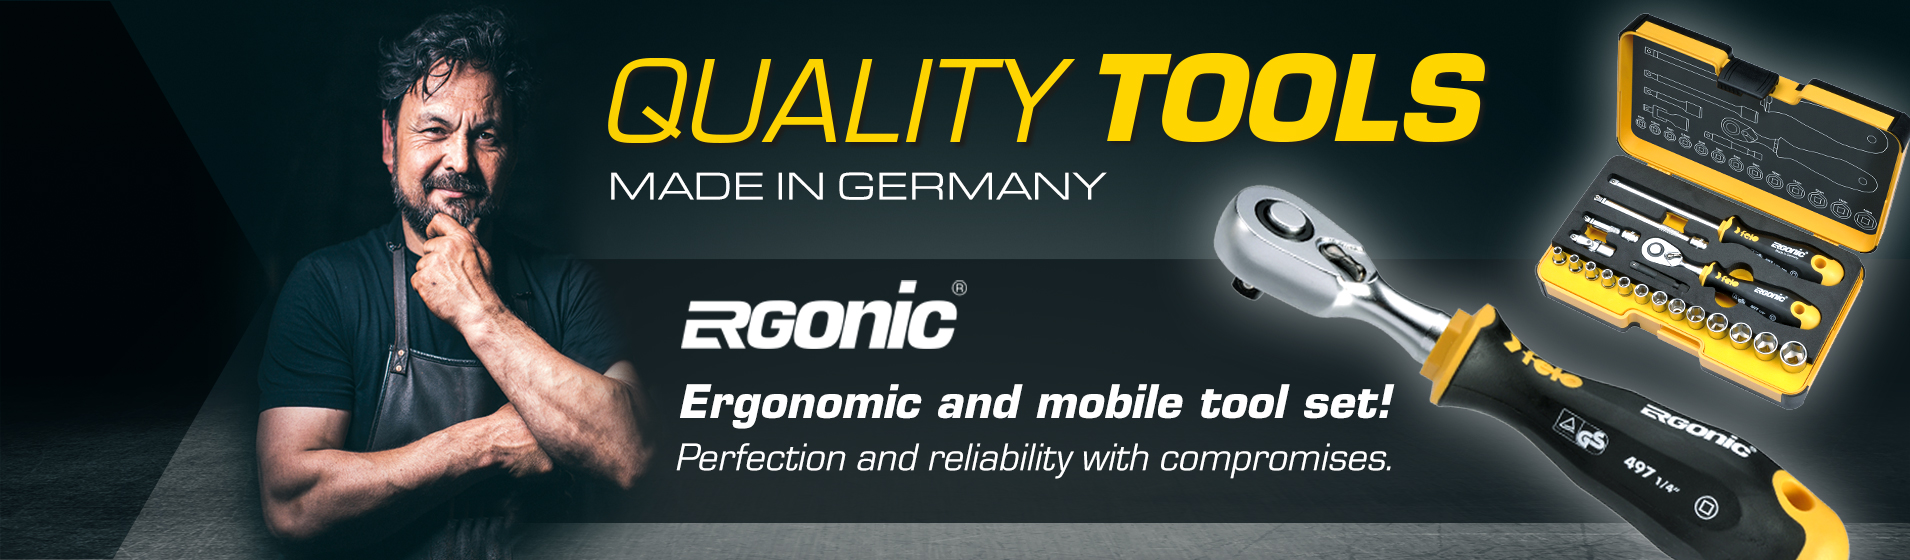 ERGONIC - Perfect design and reliability without compromises